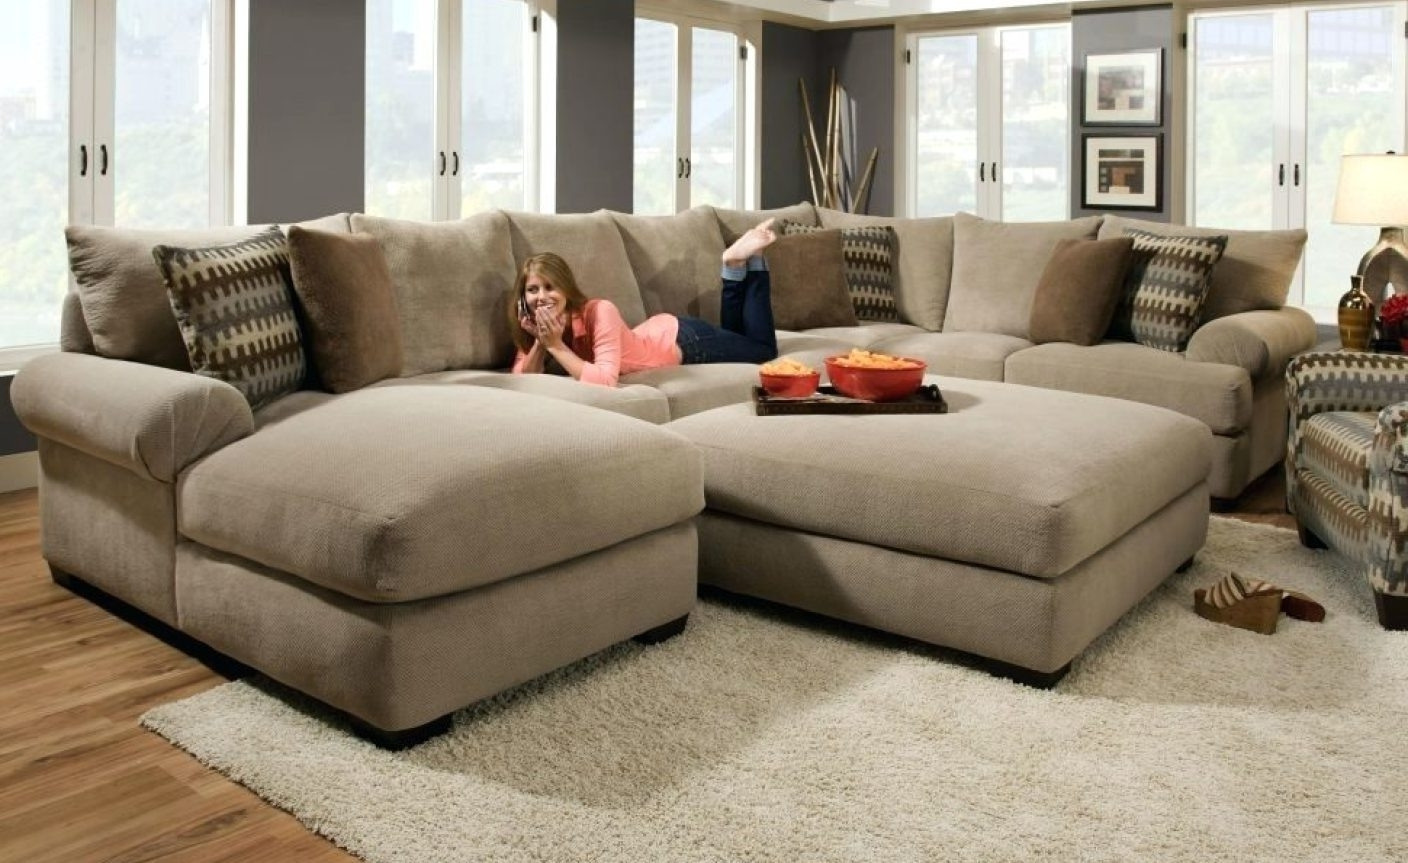 Huge U Shaped Sectionals With Regard To Famous Sofa : Sofa U Shaped Sectional Sofa With Chaise Fabric Stunning U (View 12 of 15)